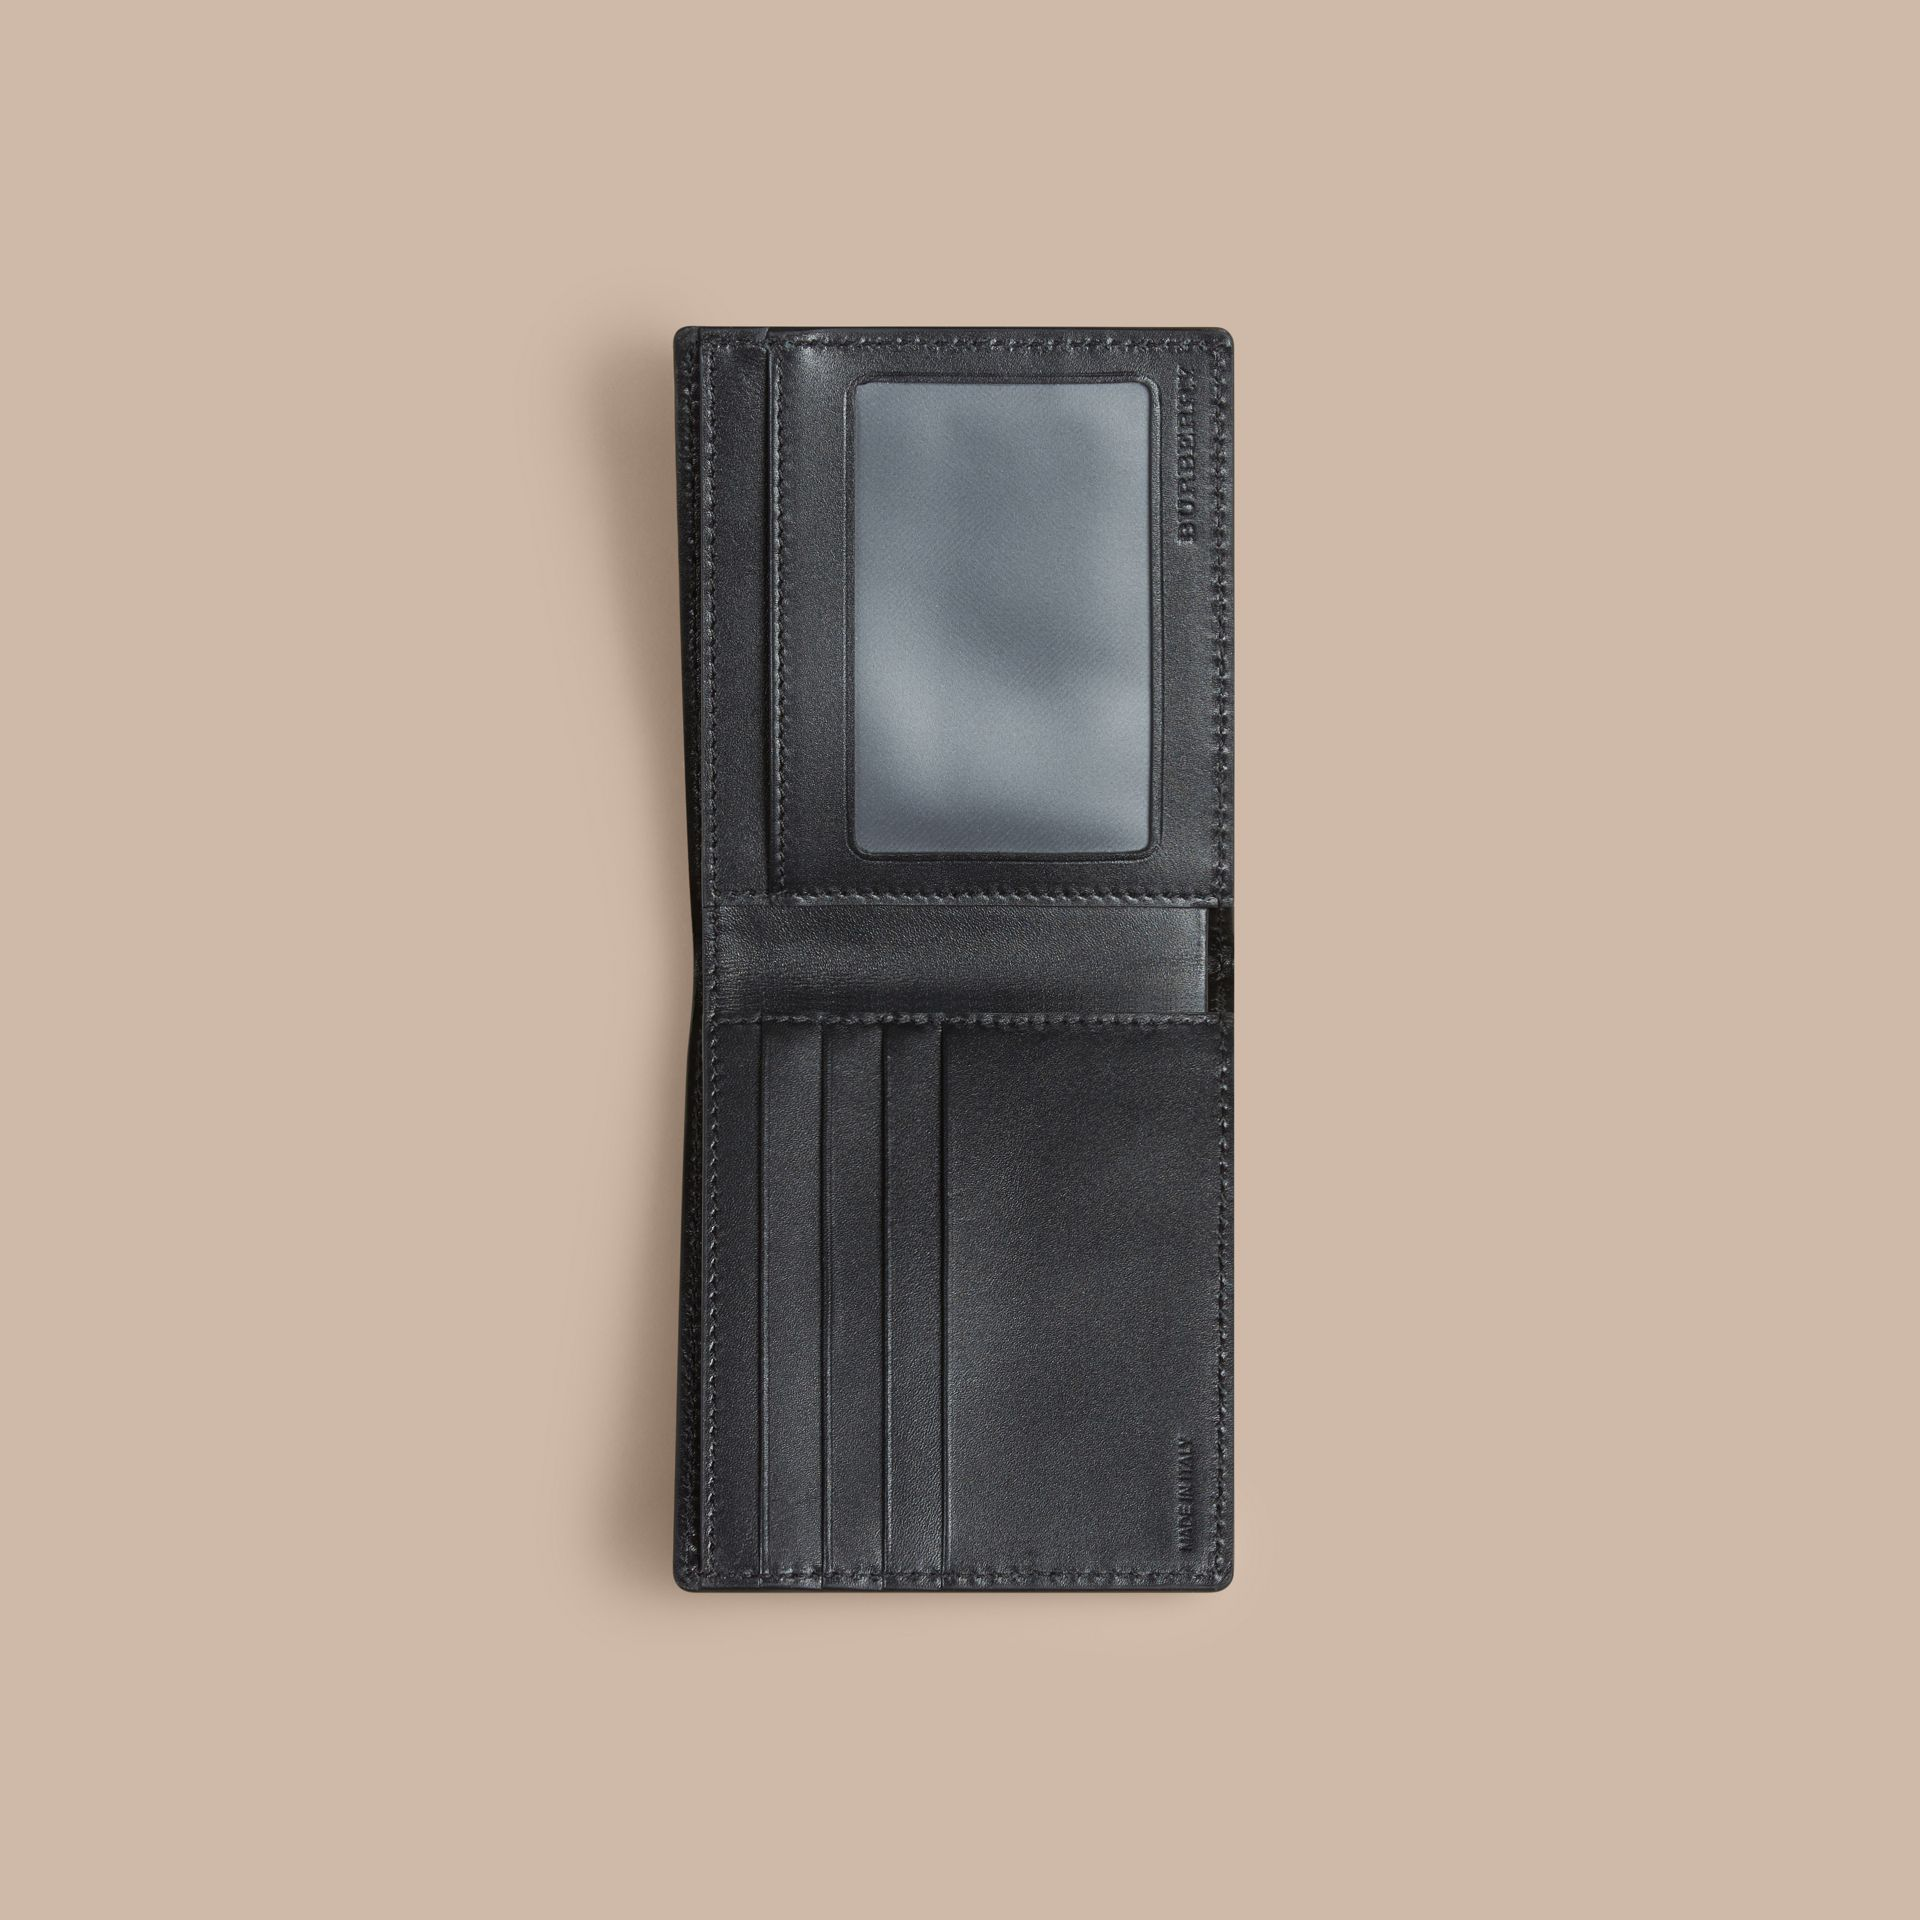 London Leather ID Wallet in Black - Men | Burberry - gallery image 4